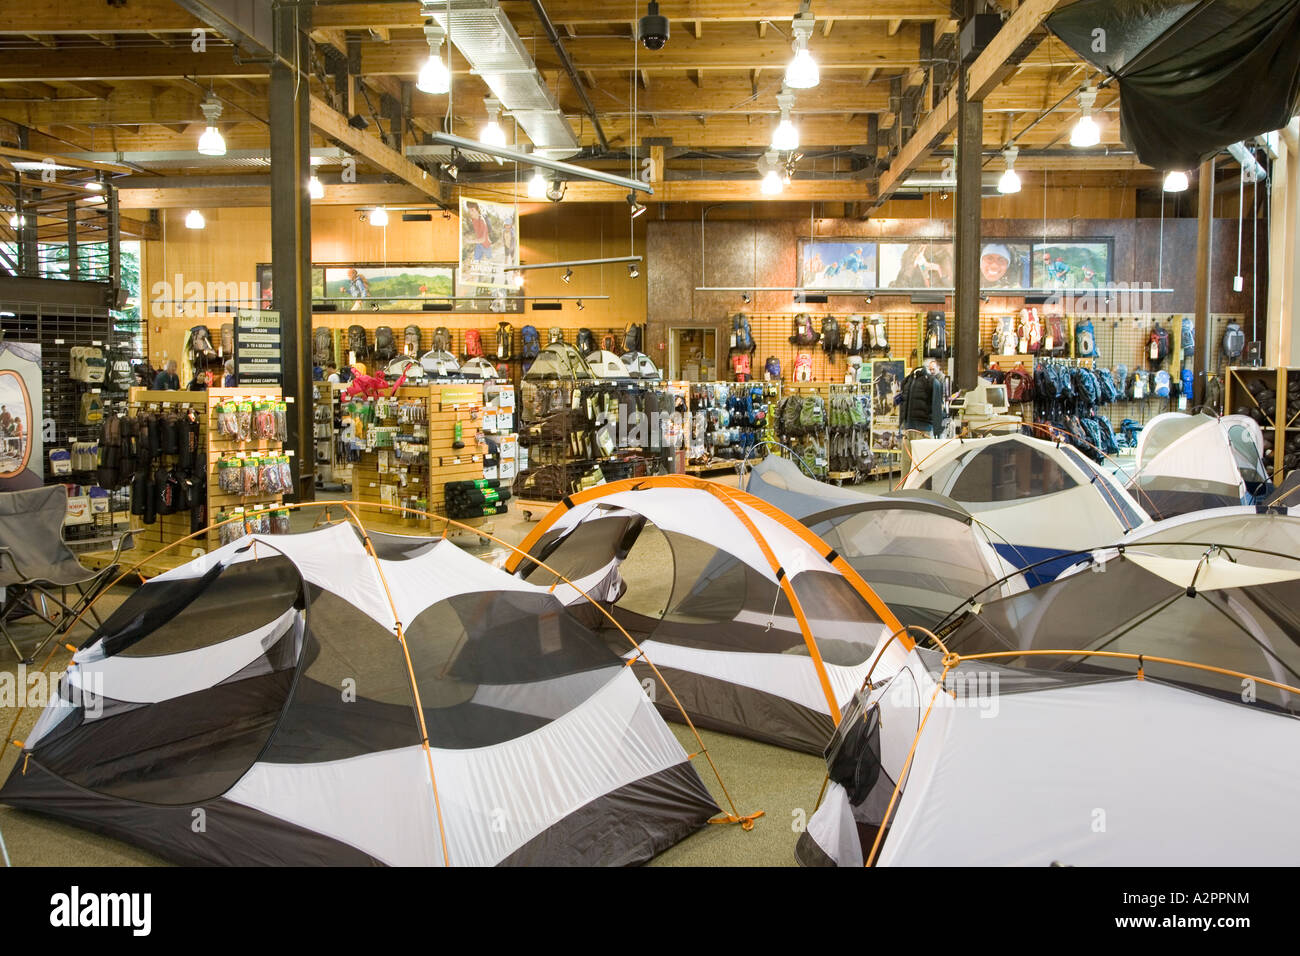 Tents and camping and outdoor equipment on sale Seattle USA Stock ... f122daf3e